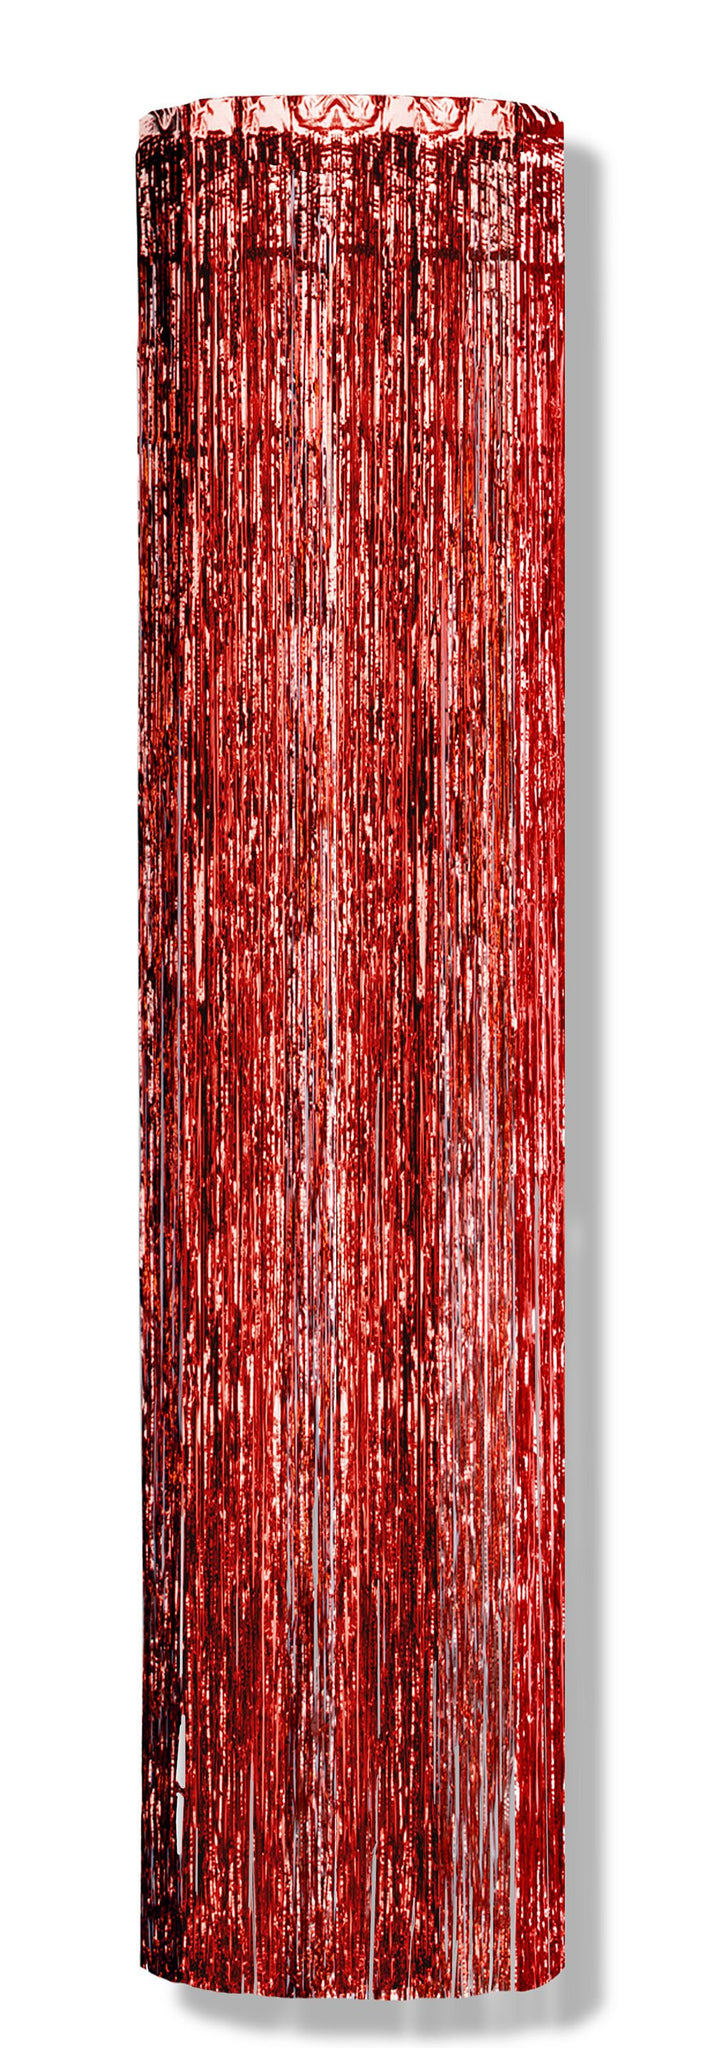 Red Metallic Column - 8ft x 1ft